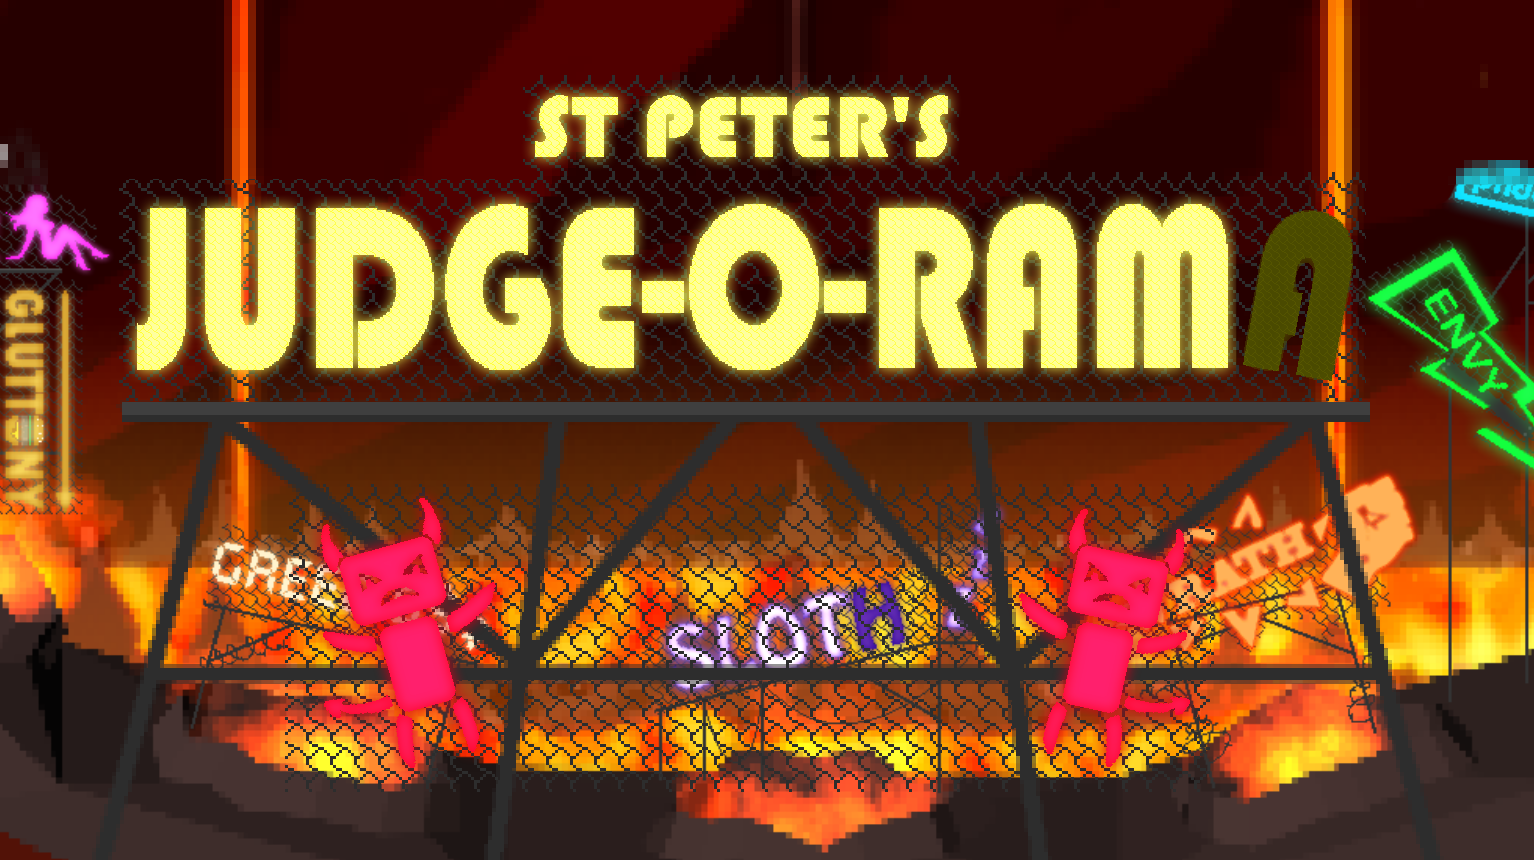 St Peter's Judge-O-Rama!